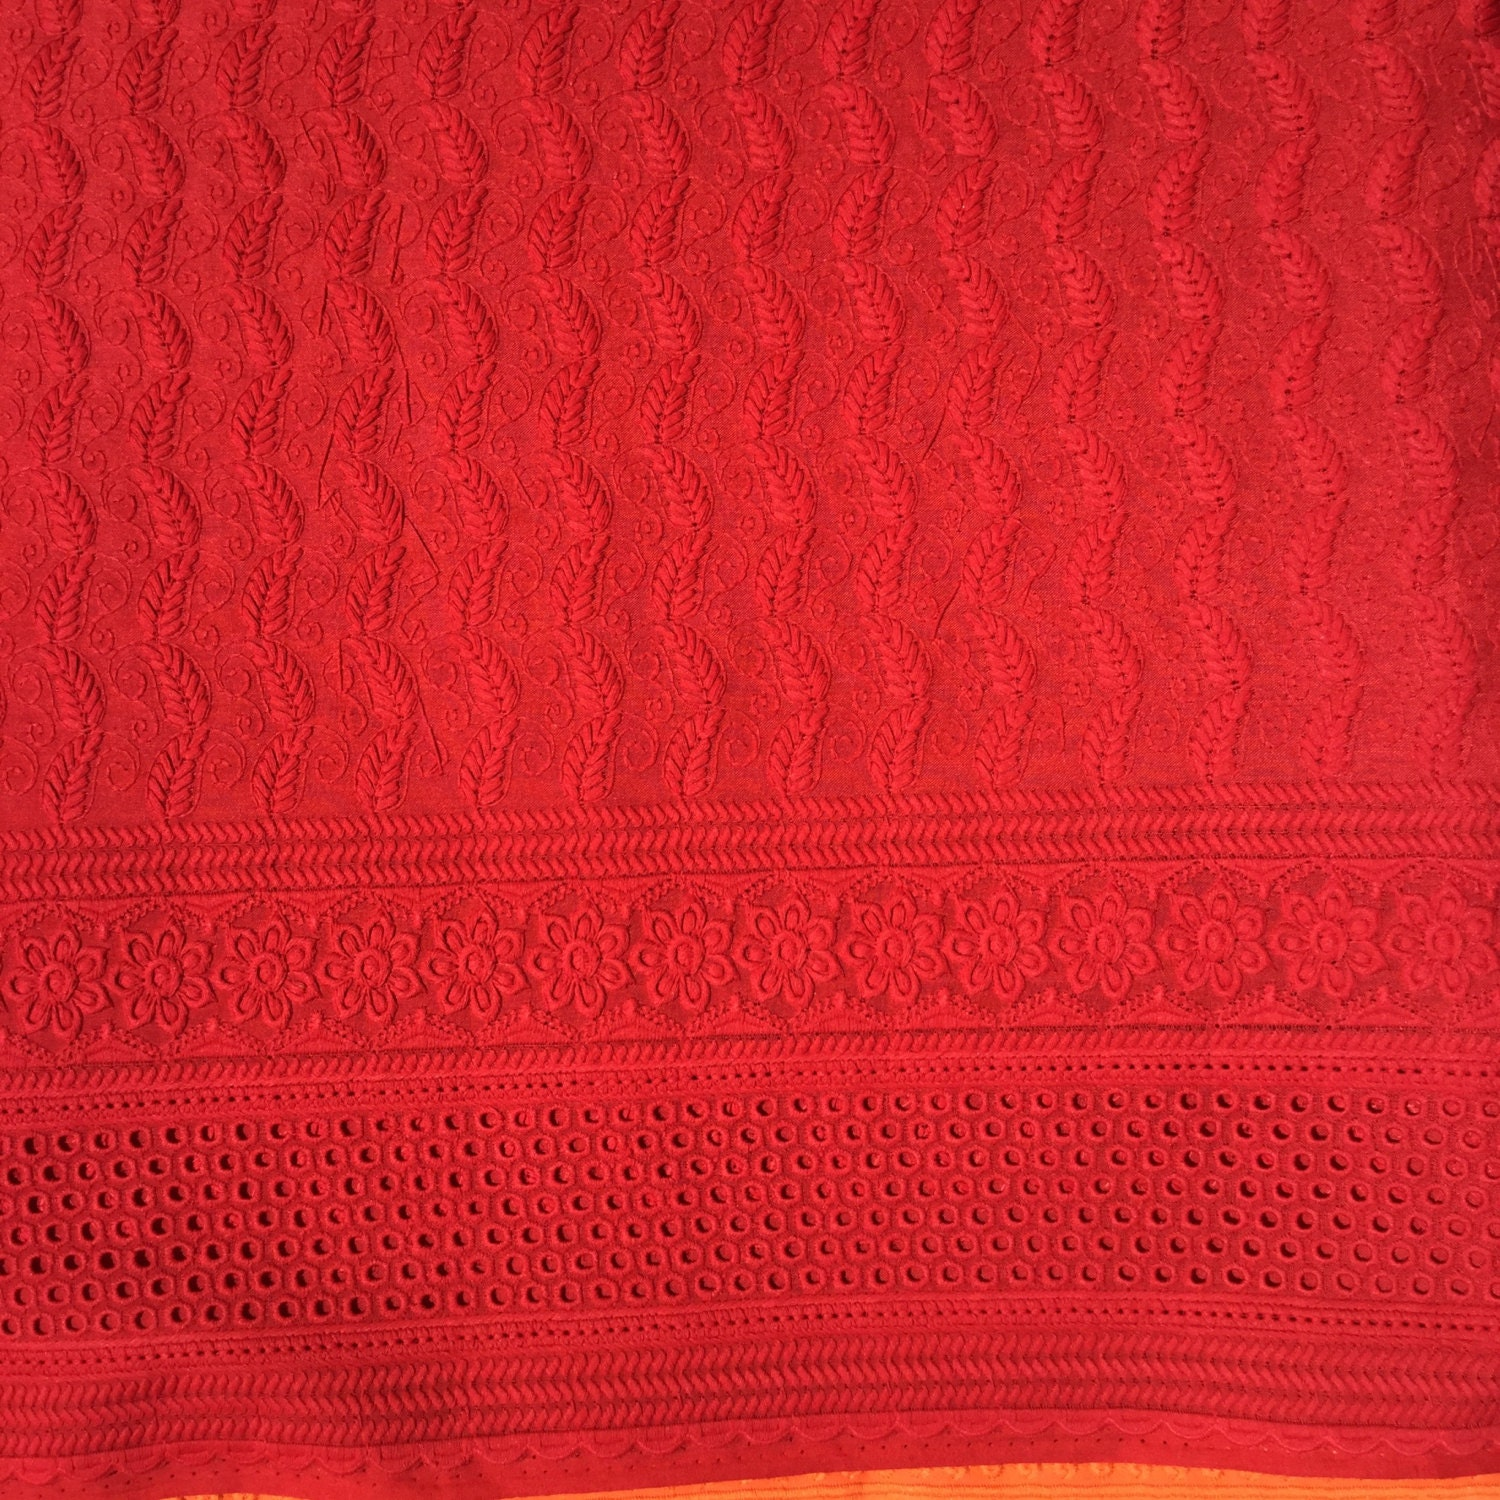 Red eyelet fabric lace cotton colored